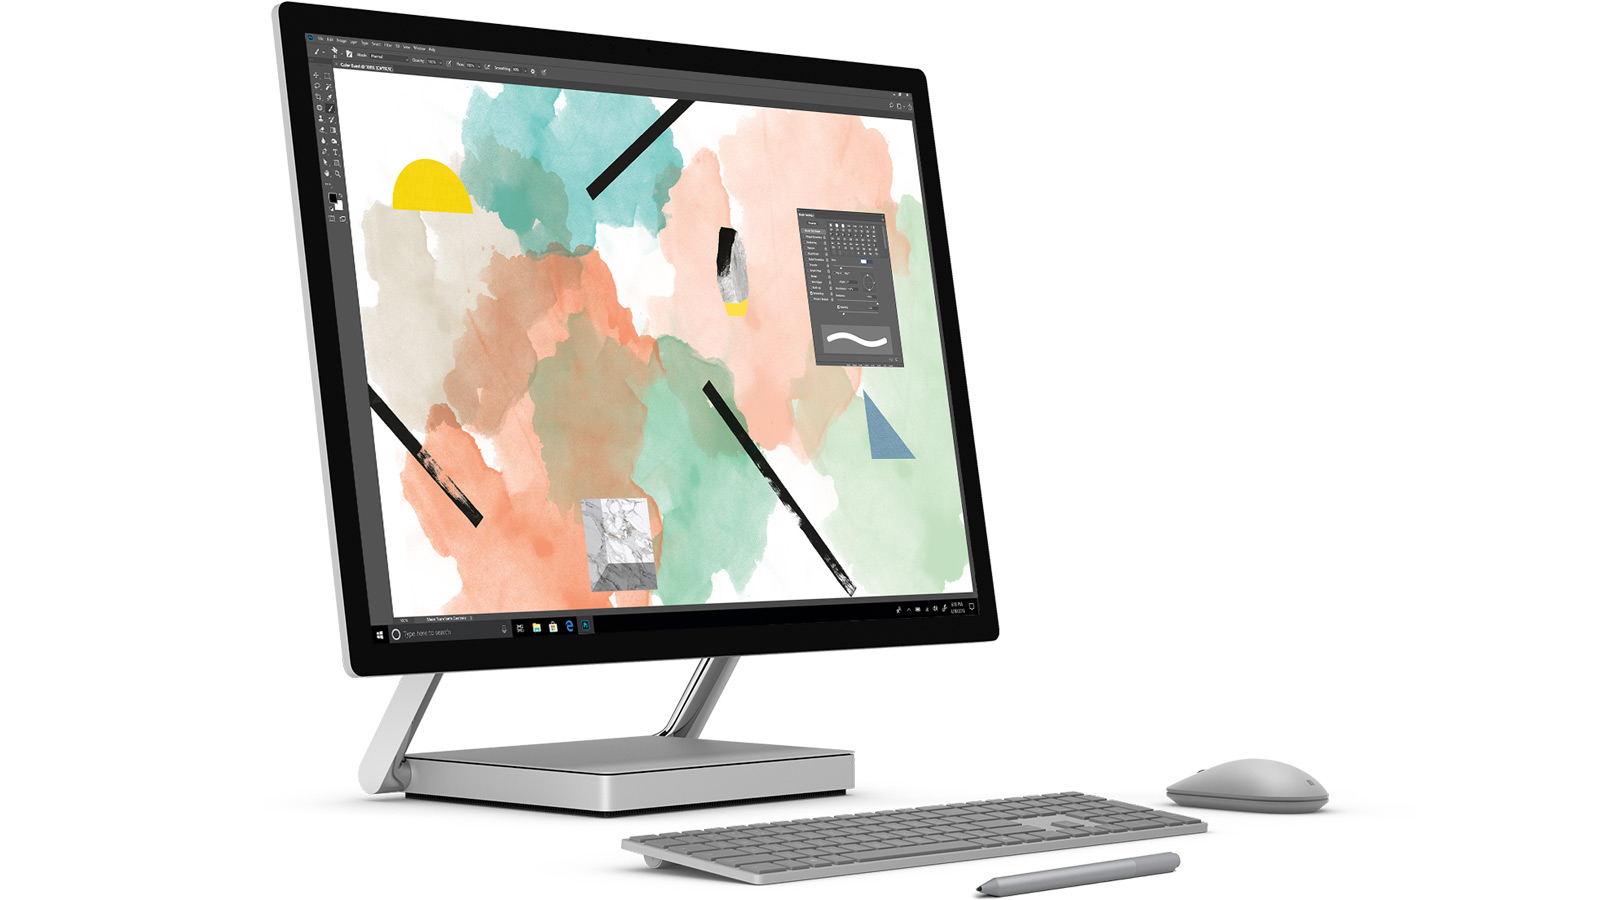 Surface Studio met toetsenbord, muis en Surface-pen.